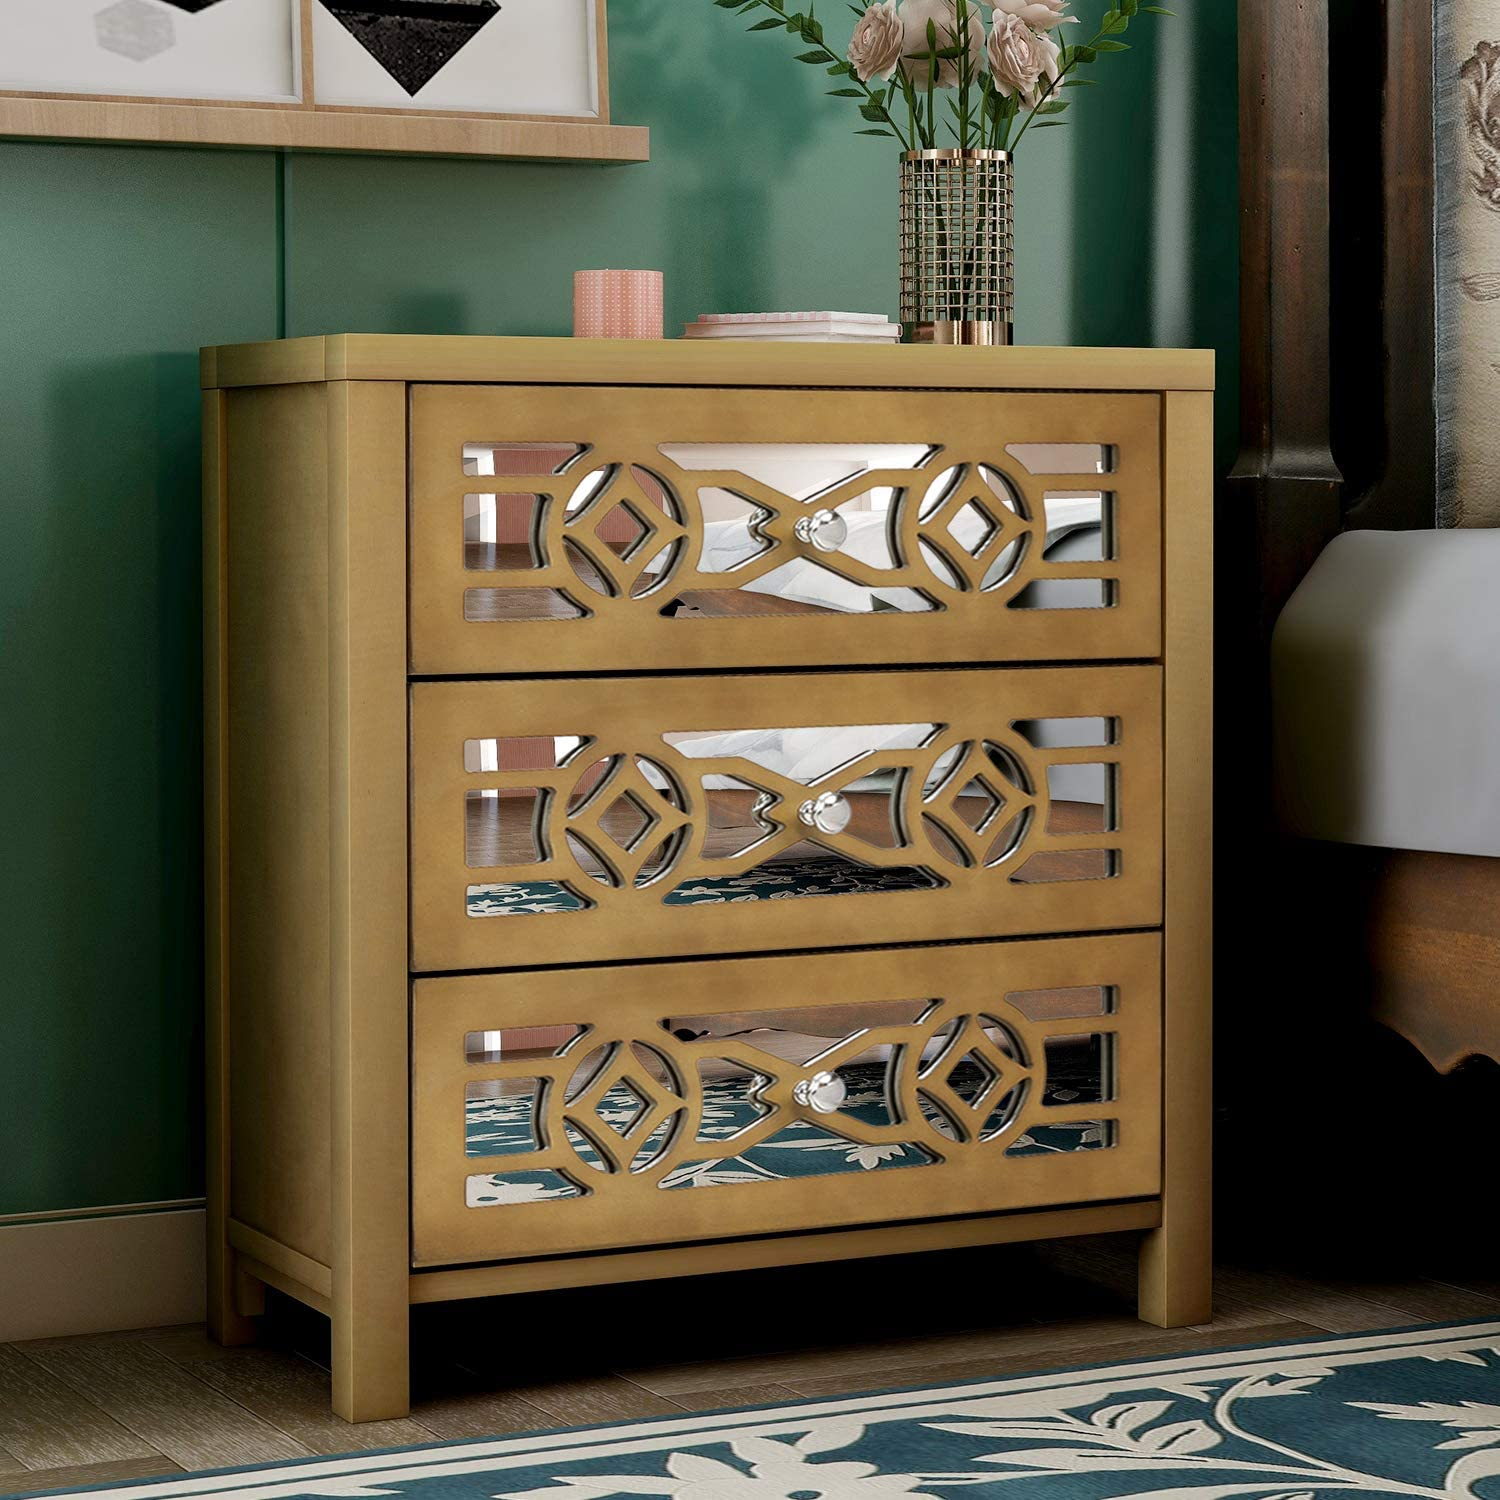 Amazon Com Danxee Wood Accent Buffet Sideboard Serving Storage Cabinet With 3 Drawers And Decorative Mirror Entryway For Bathroom Kitchen Dining Console Living Room Gold Buffets Sideboards